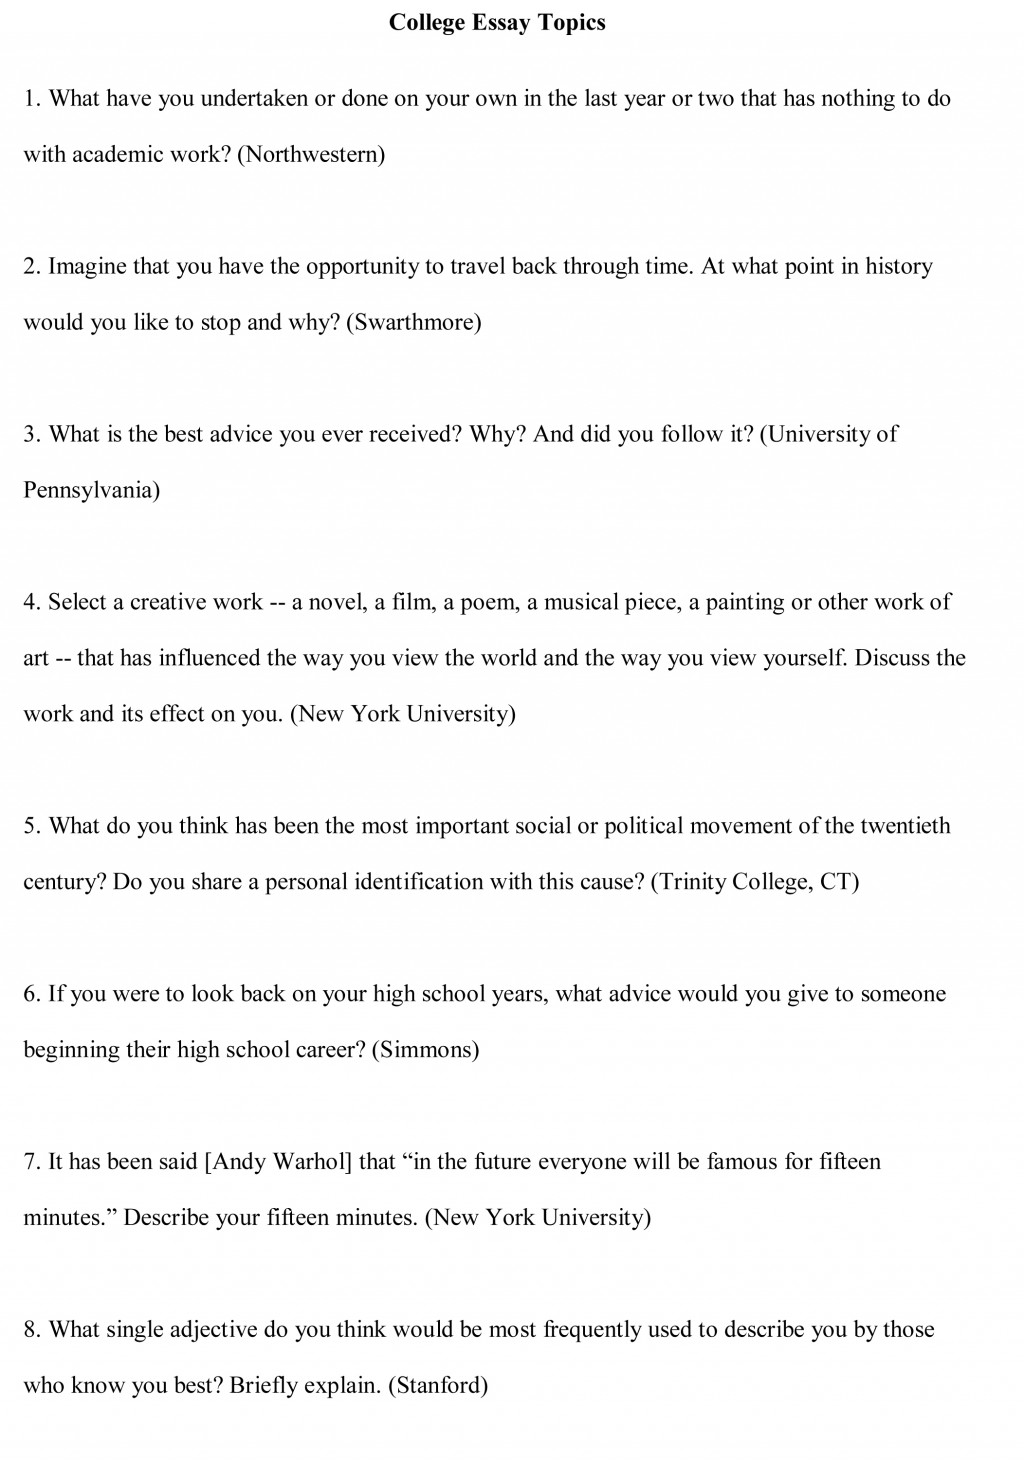 005 College Essay Topics Free Sample1 Good For Research Paper Breathtaking In Interesting Students Papers Large